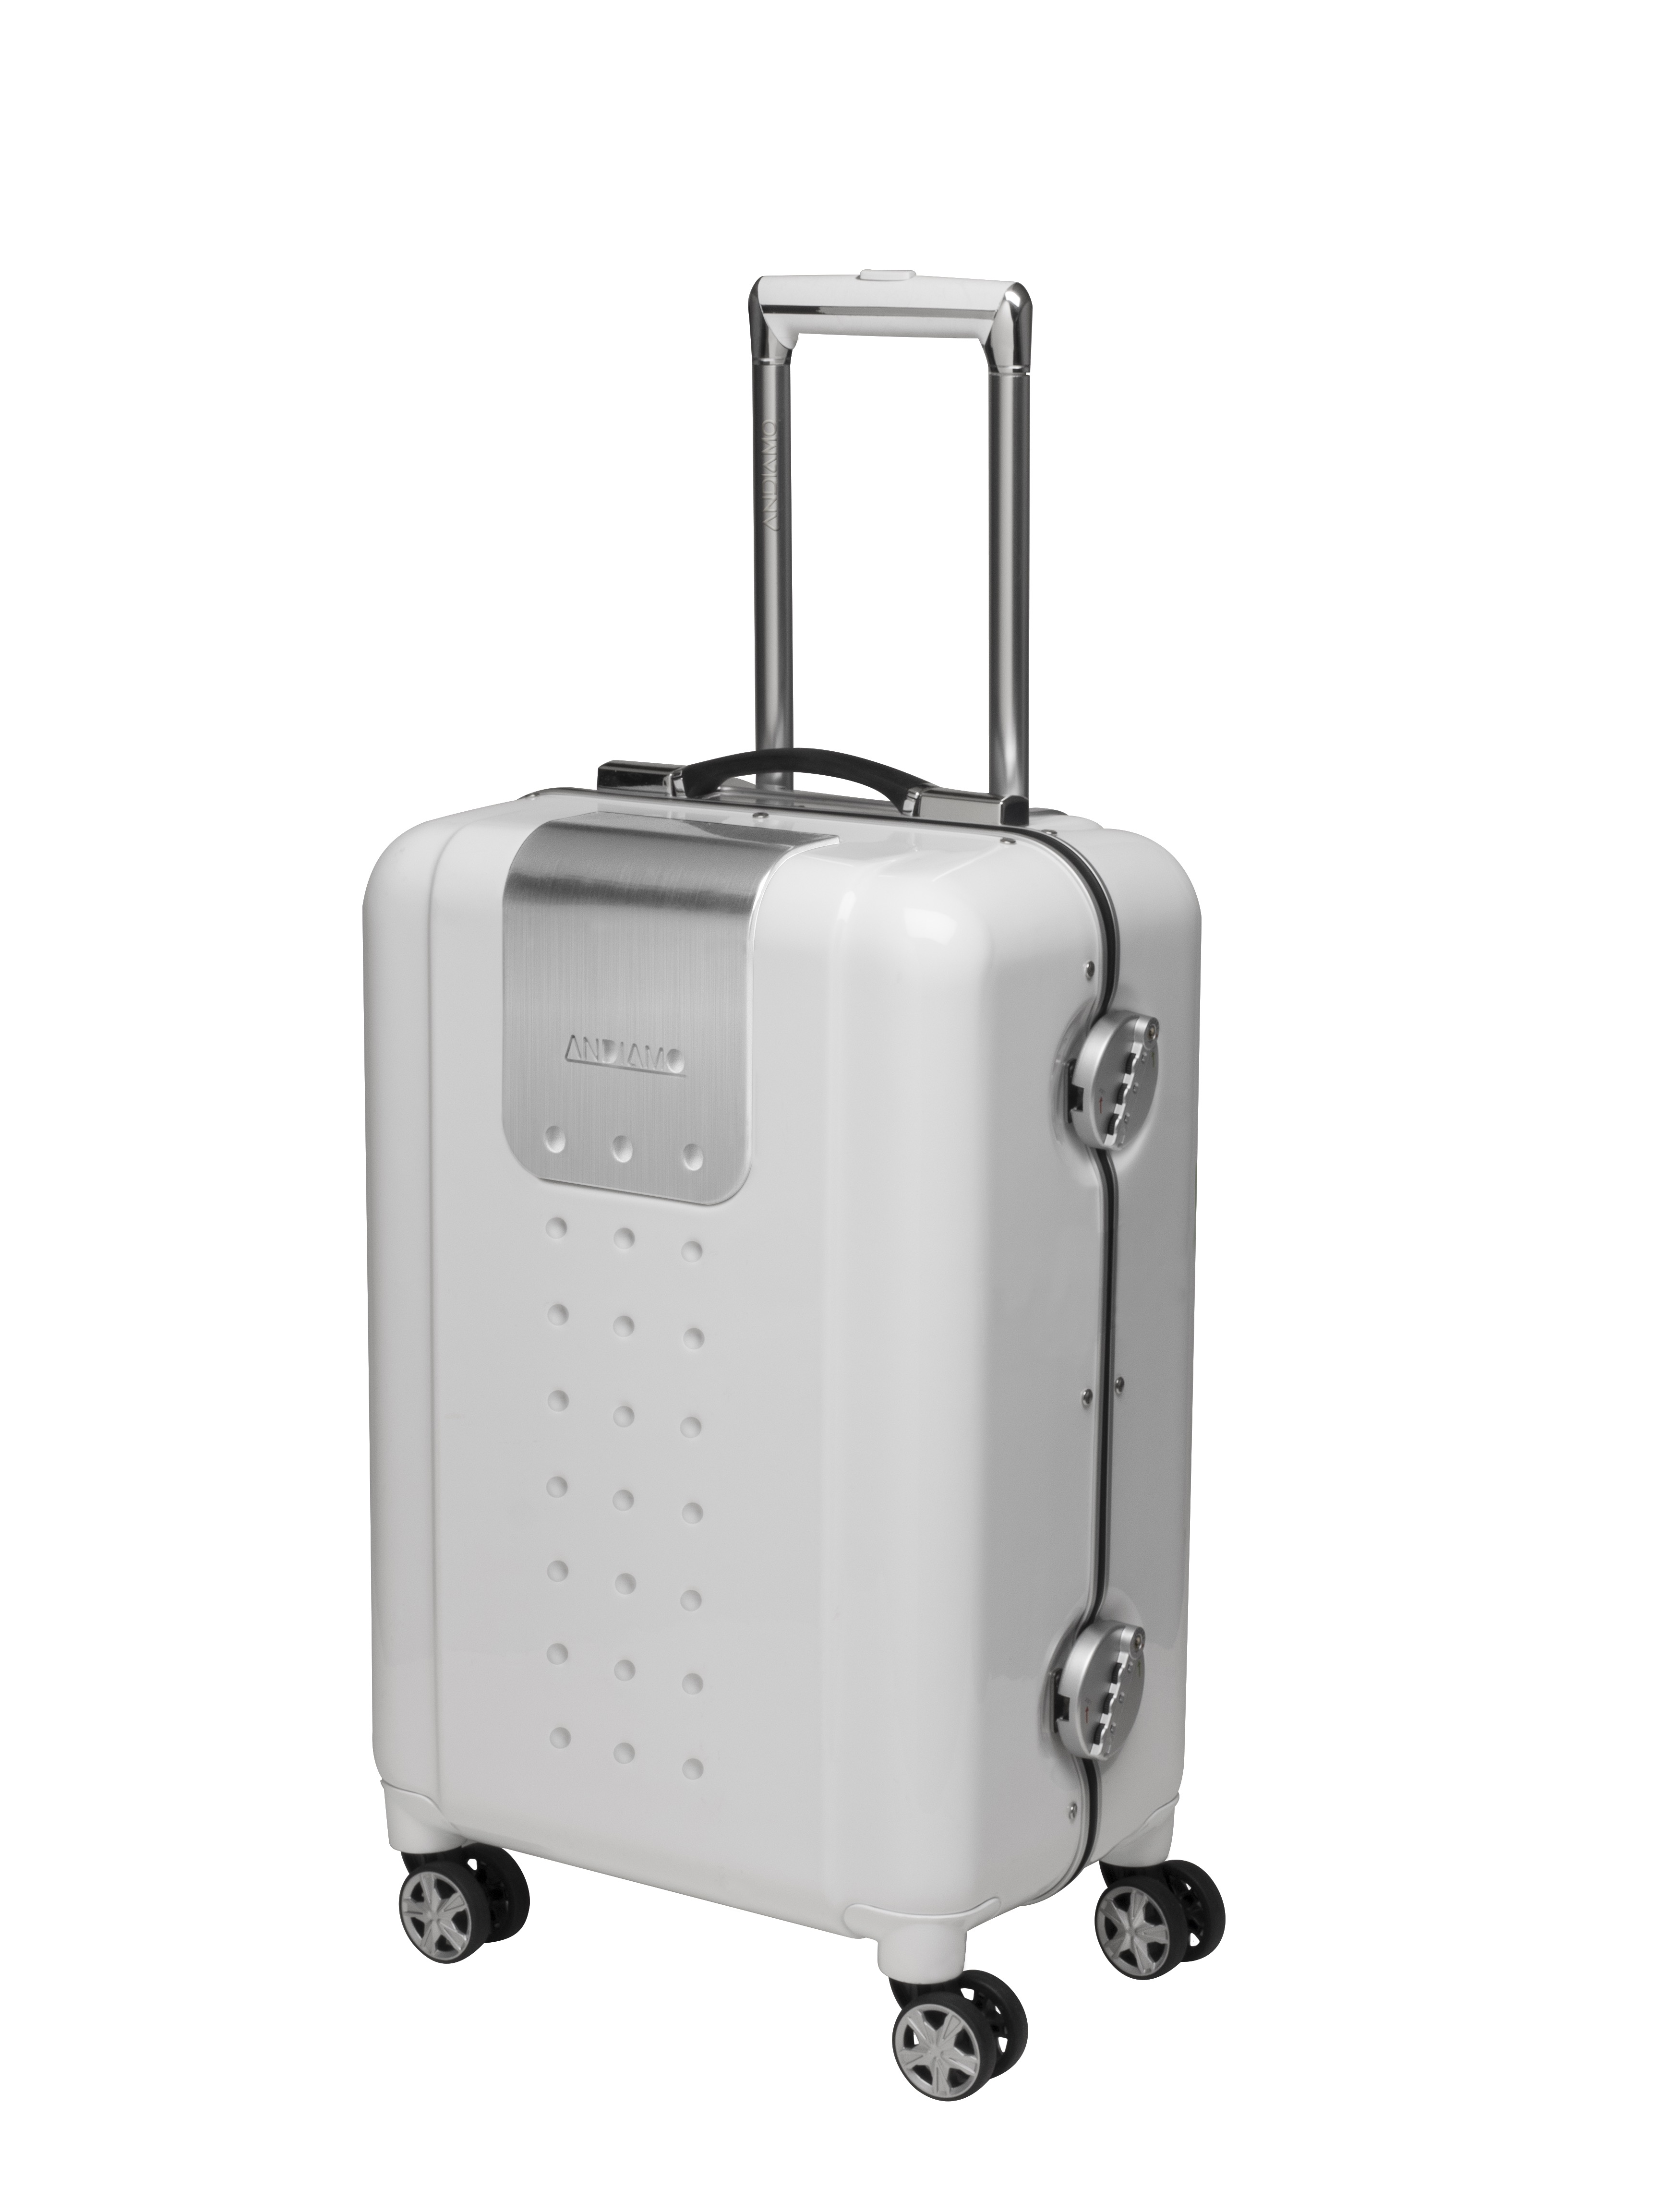 Andiamo iQ Smart Luggage Comes Equipped with Wi-Fi, Mobile Charger ...